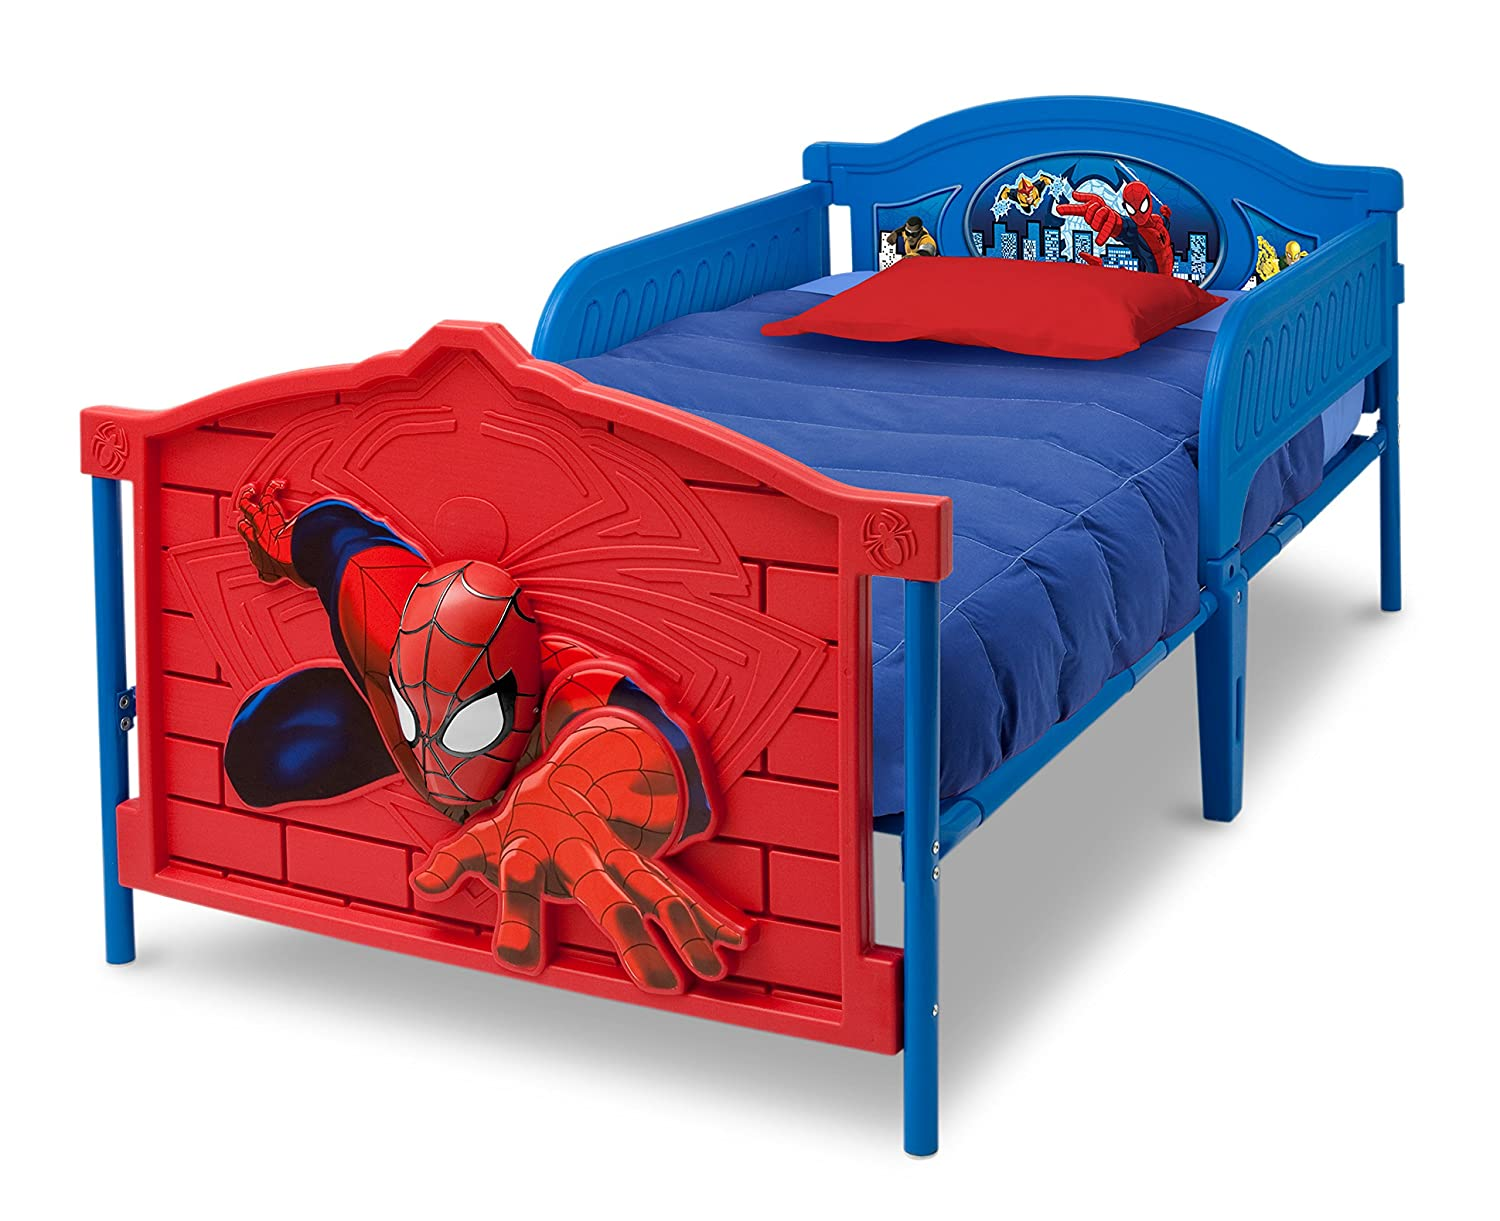 Step2 princess palace twin bed car interior design - Twin Bed For Toddler A Crib That Converts To A Toddler Bed Twin Bed Amazoncom Delta Step2 Princess Palace